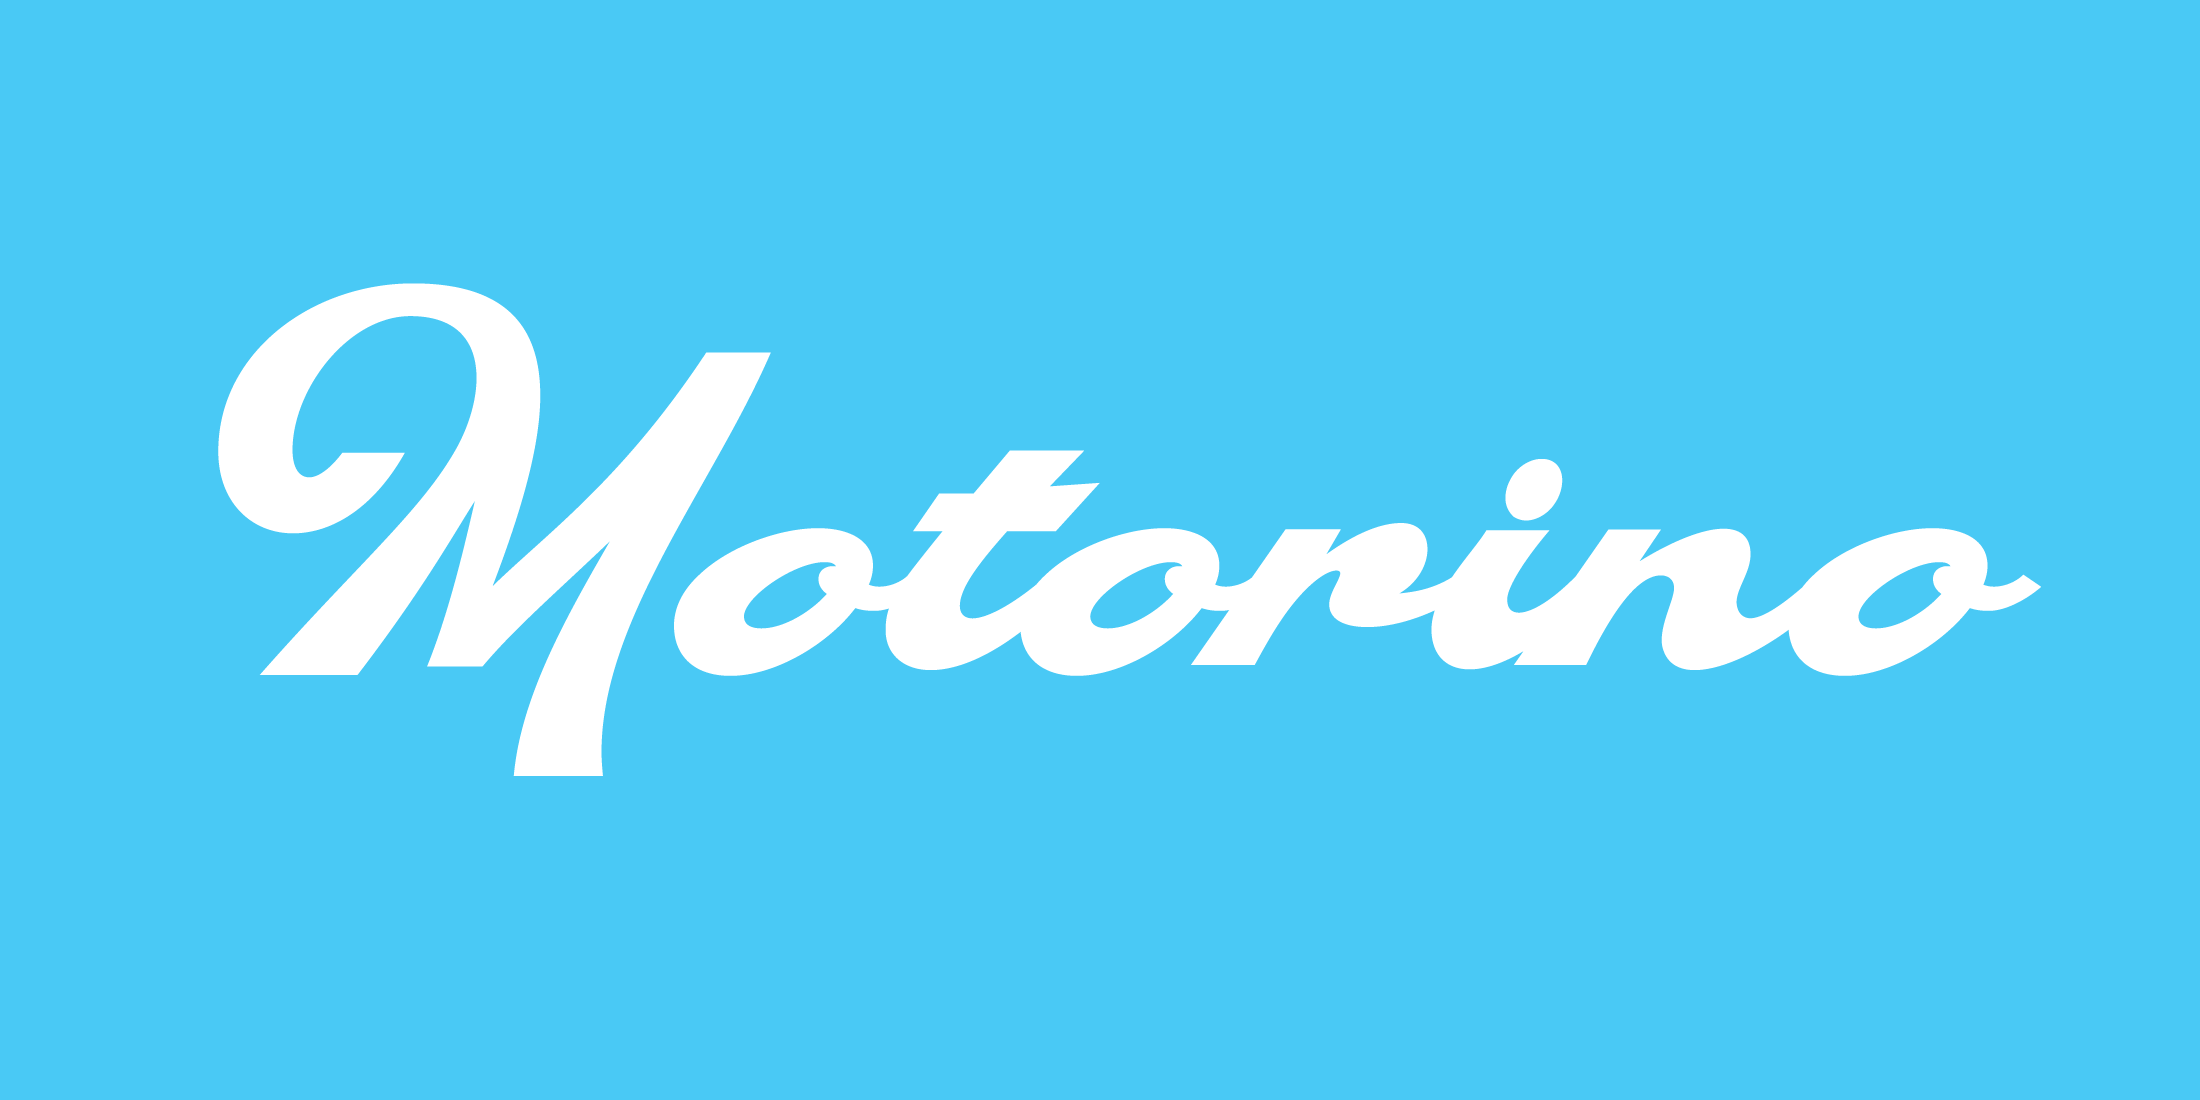 Motorino, a new script typeface designed by Andrei Robu. Available on www.typeverything.com